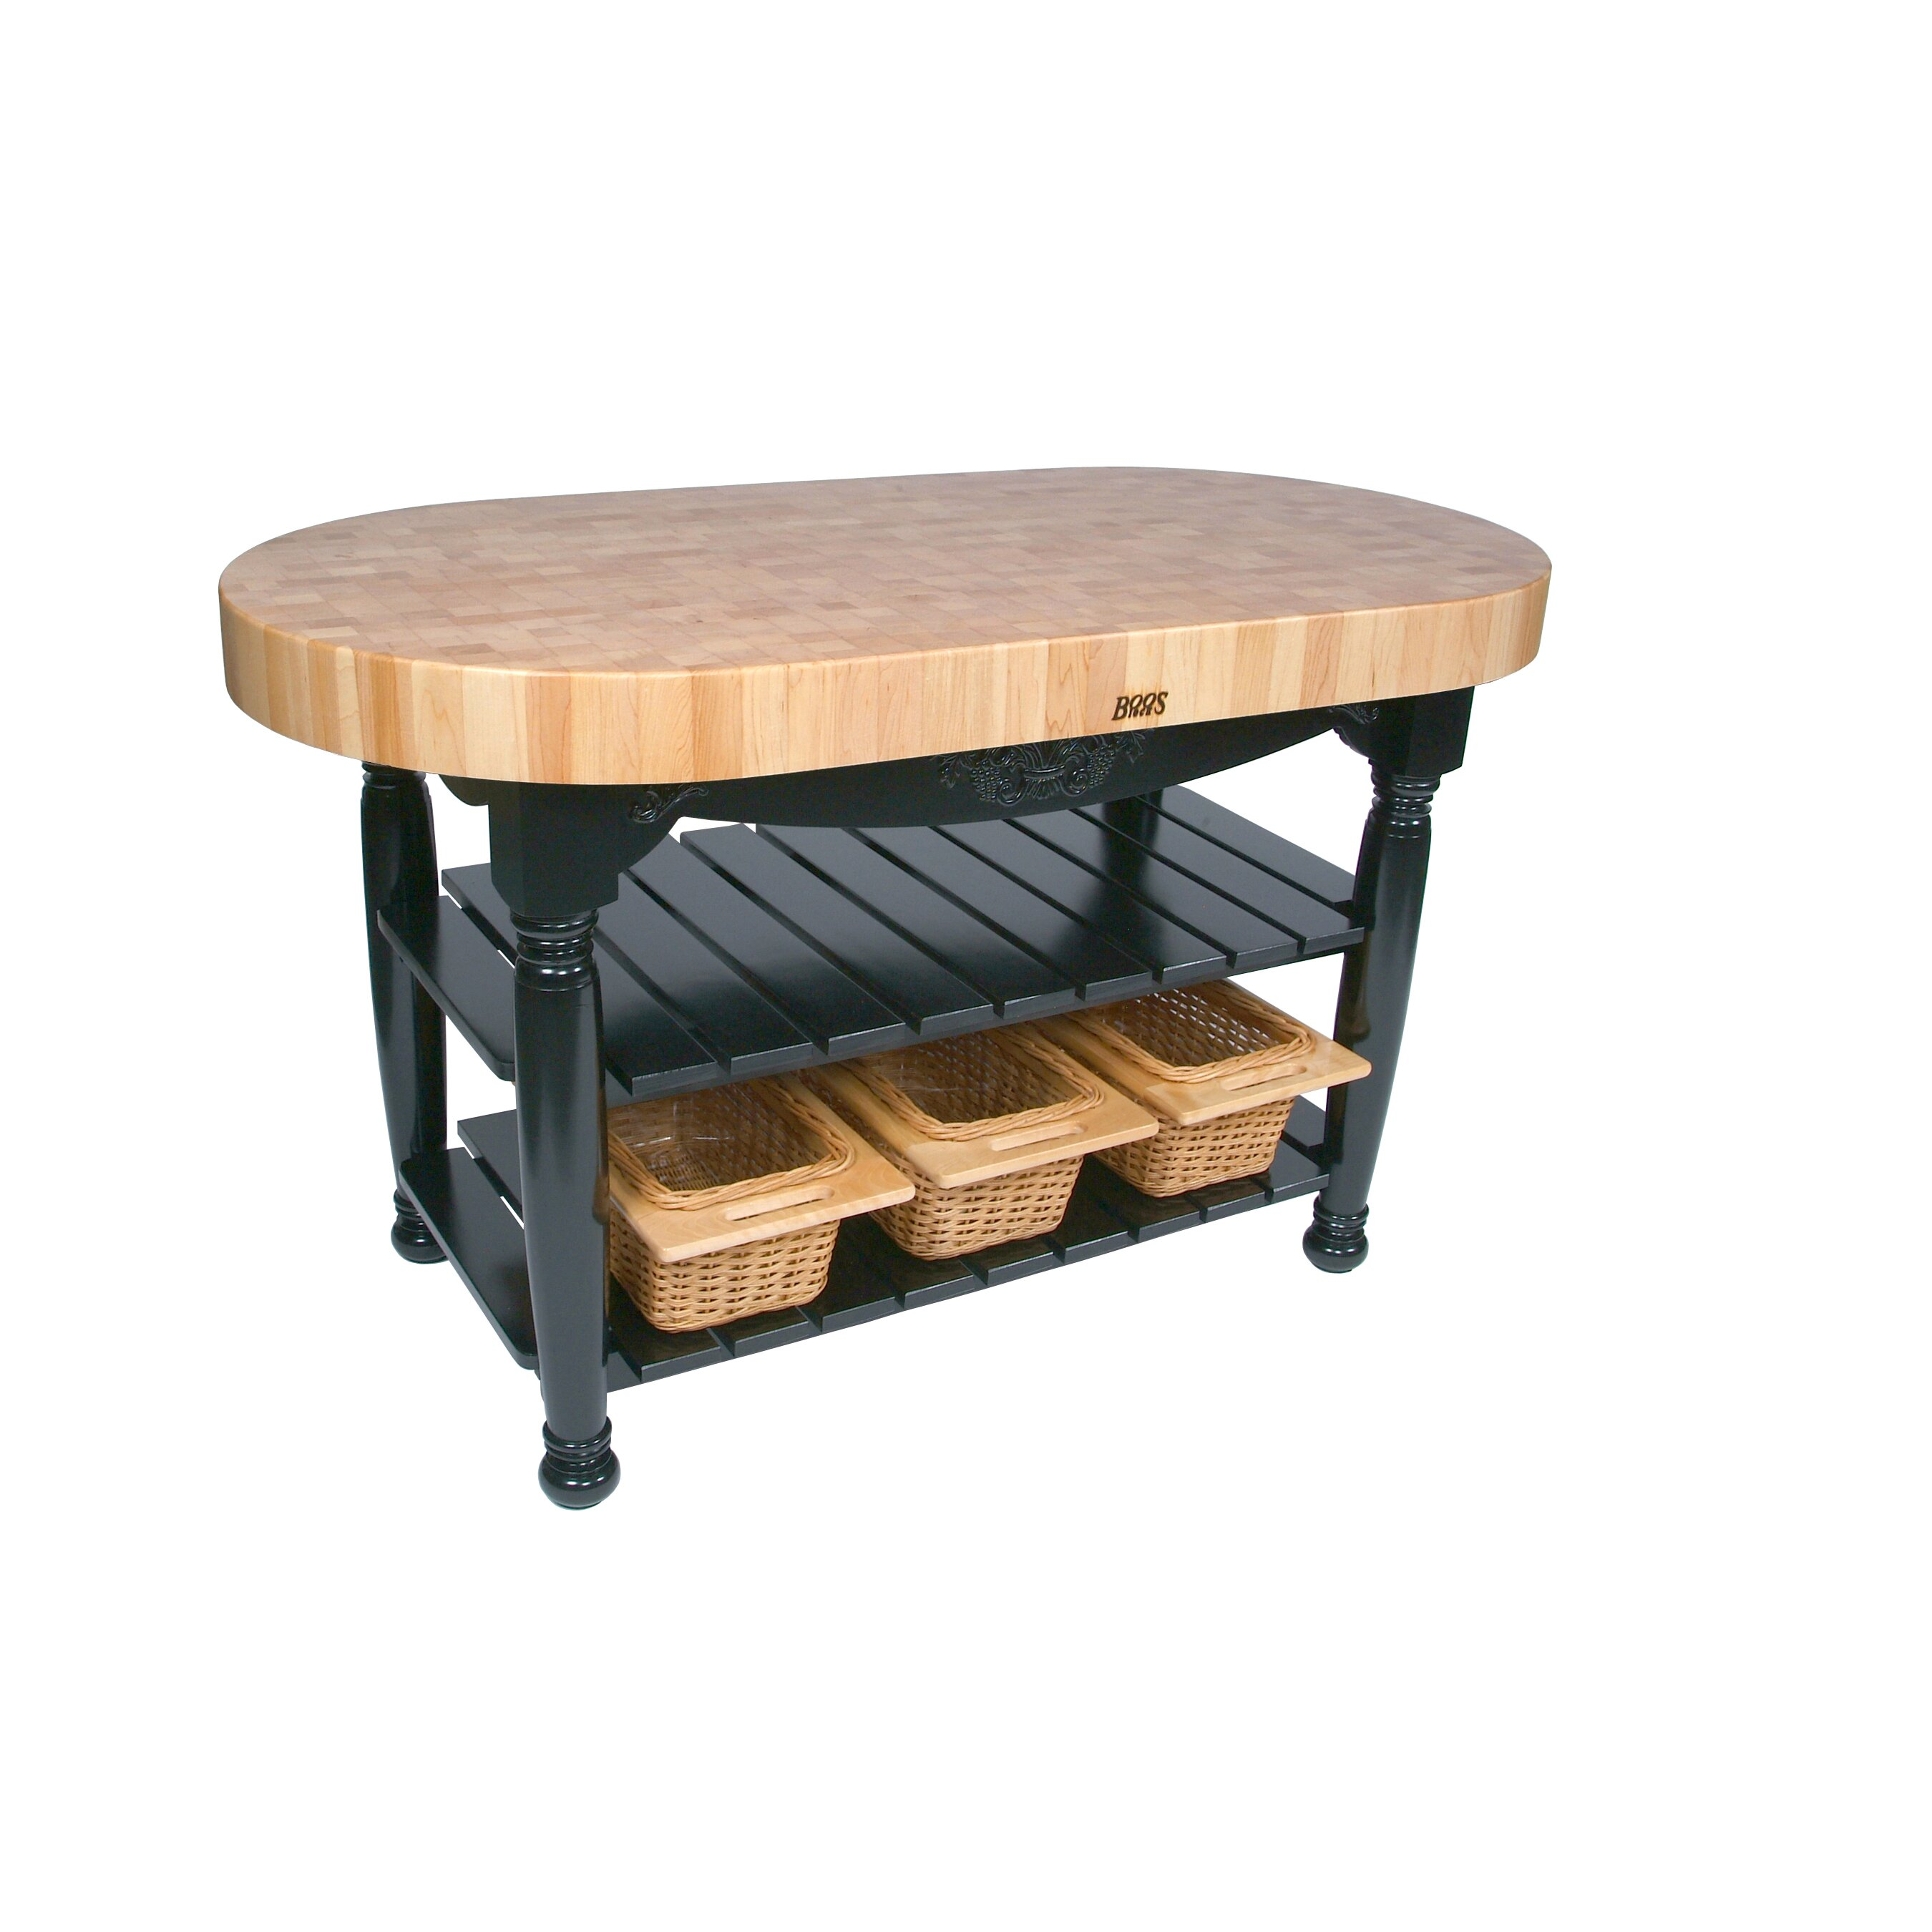 John boos american heritage prep table with butcher block top reviews wayfair - Butcher block kitchen table set ...